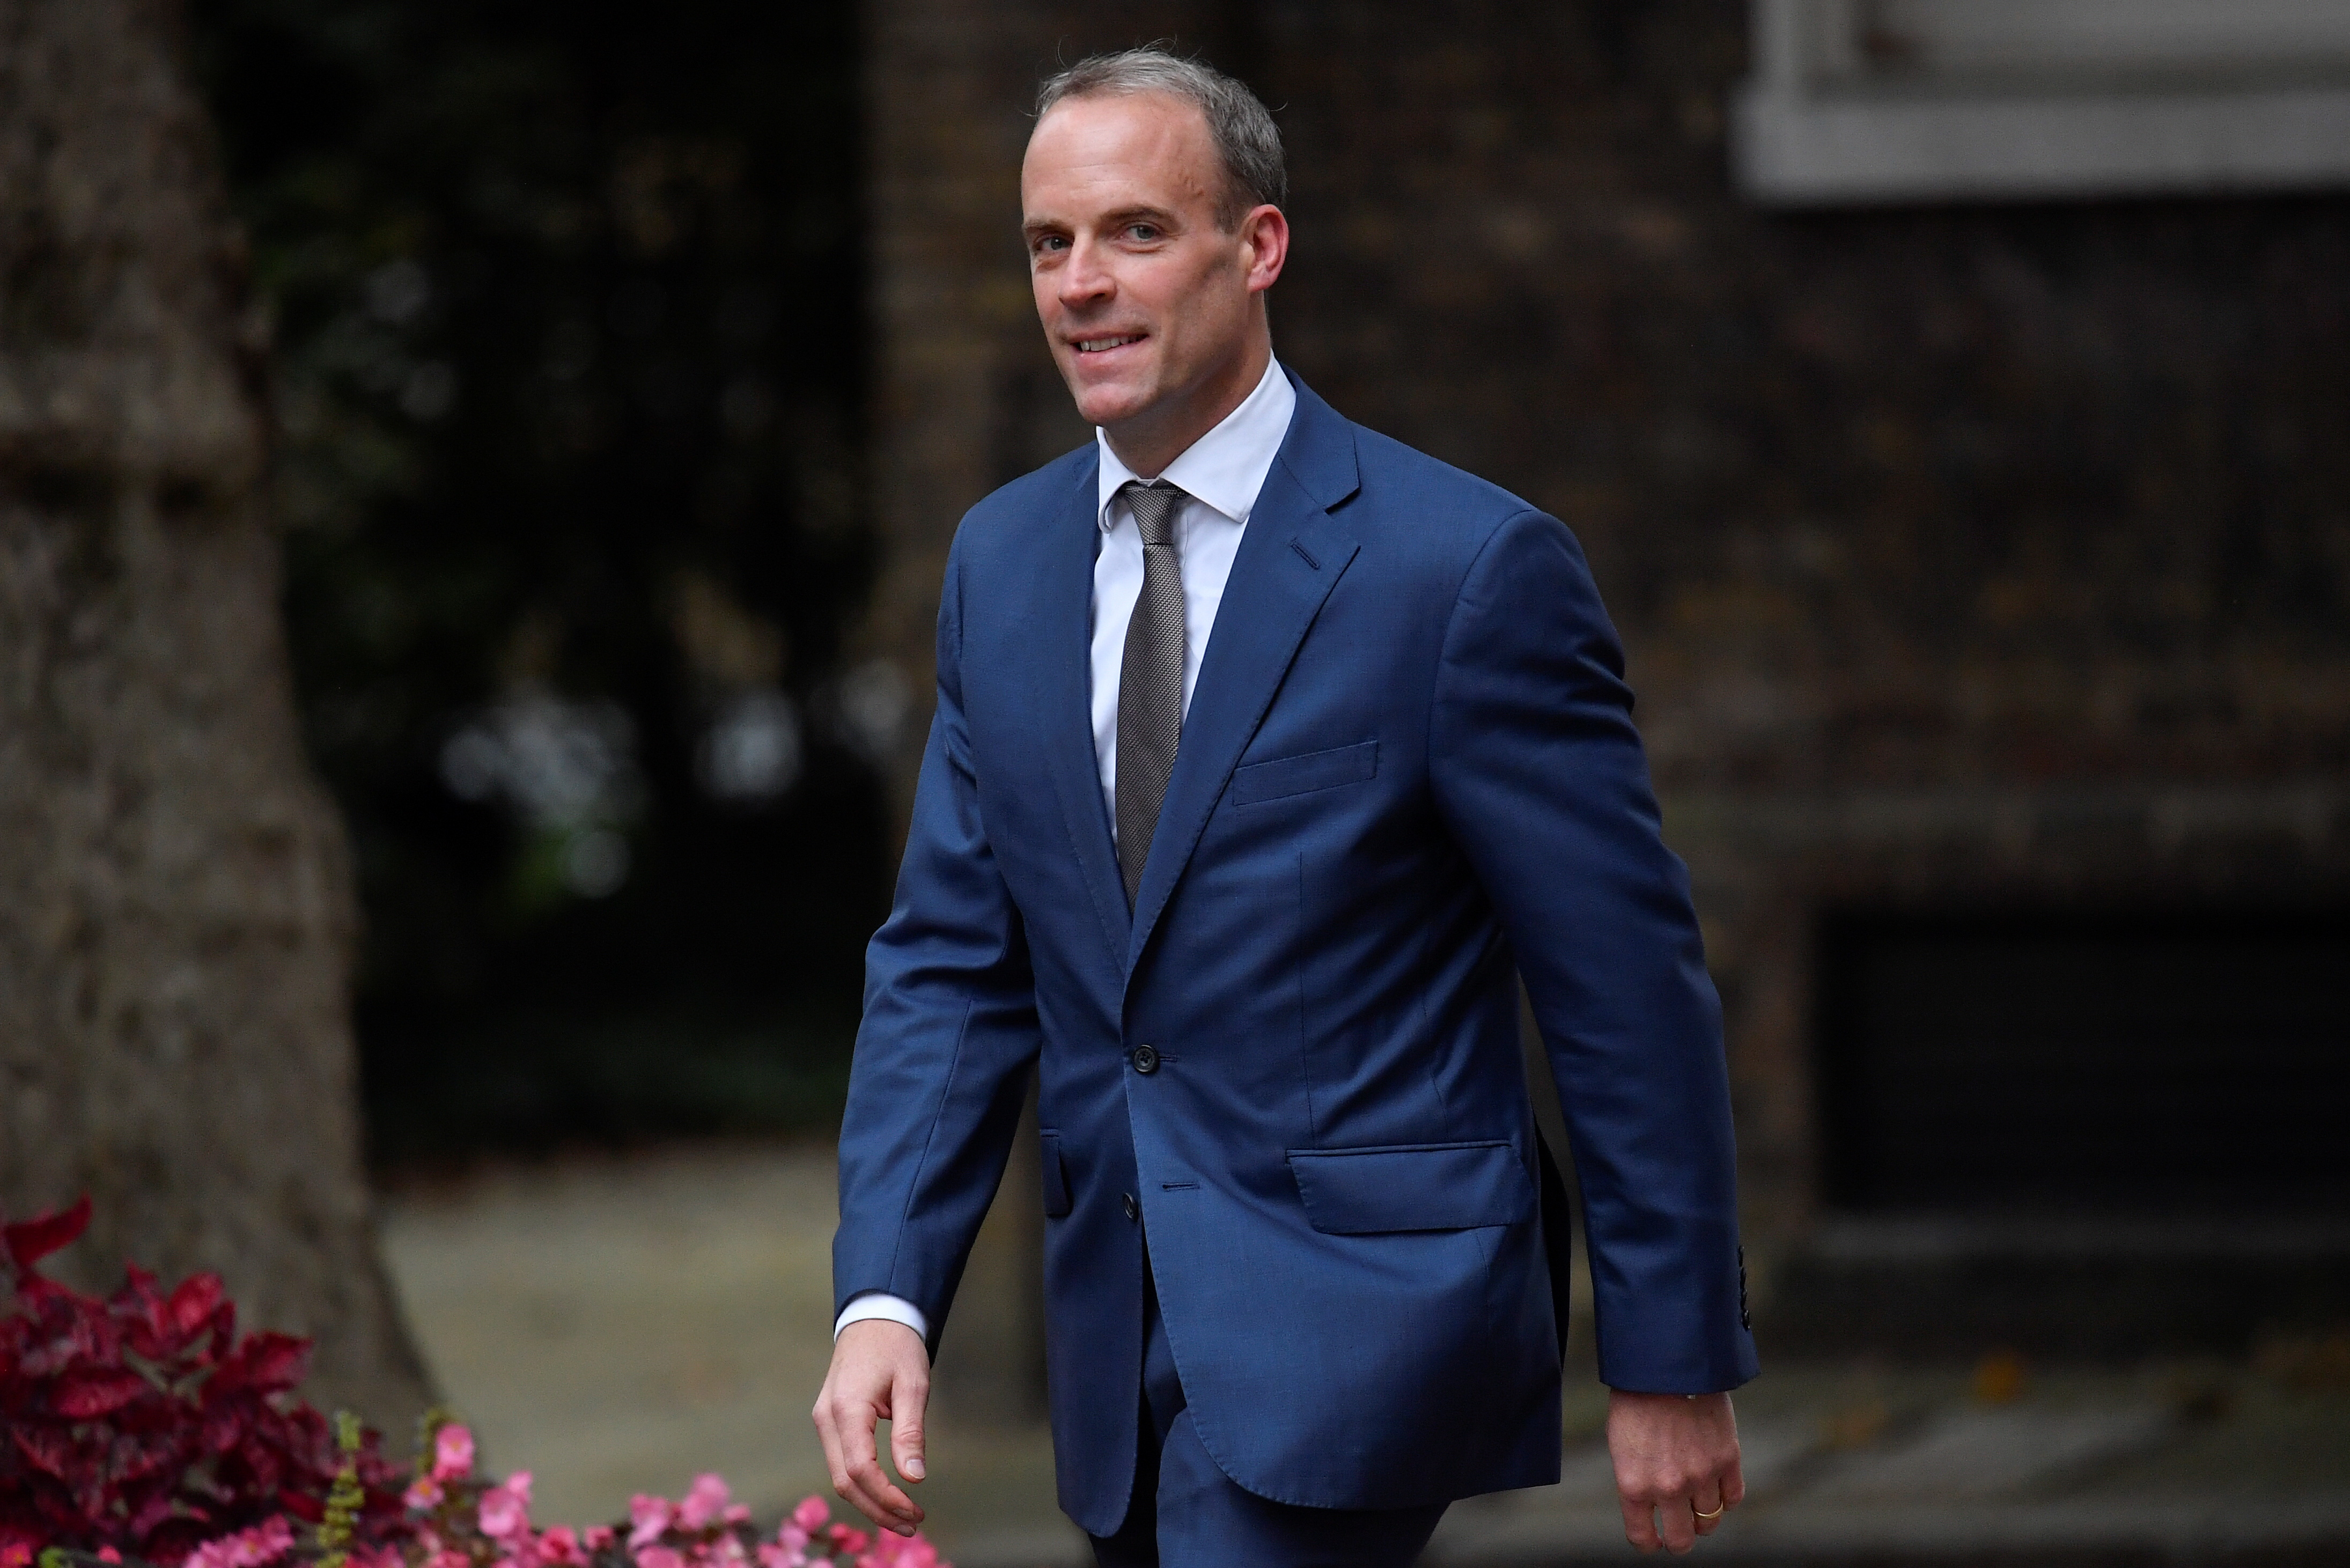 Dominic Raab, recently appointed as Justice Secretary, walks outside Downing Street in London, Britain, September 15, 2021. REUTERS/Toby Melville